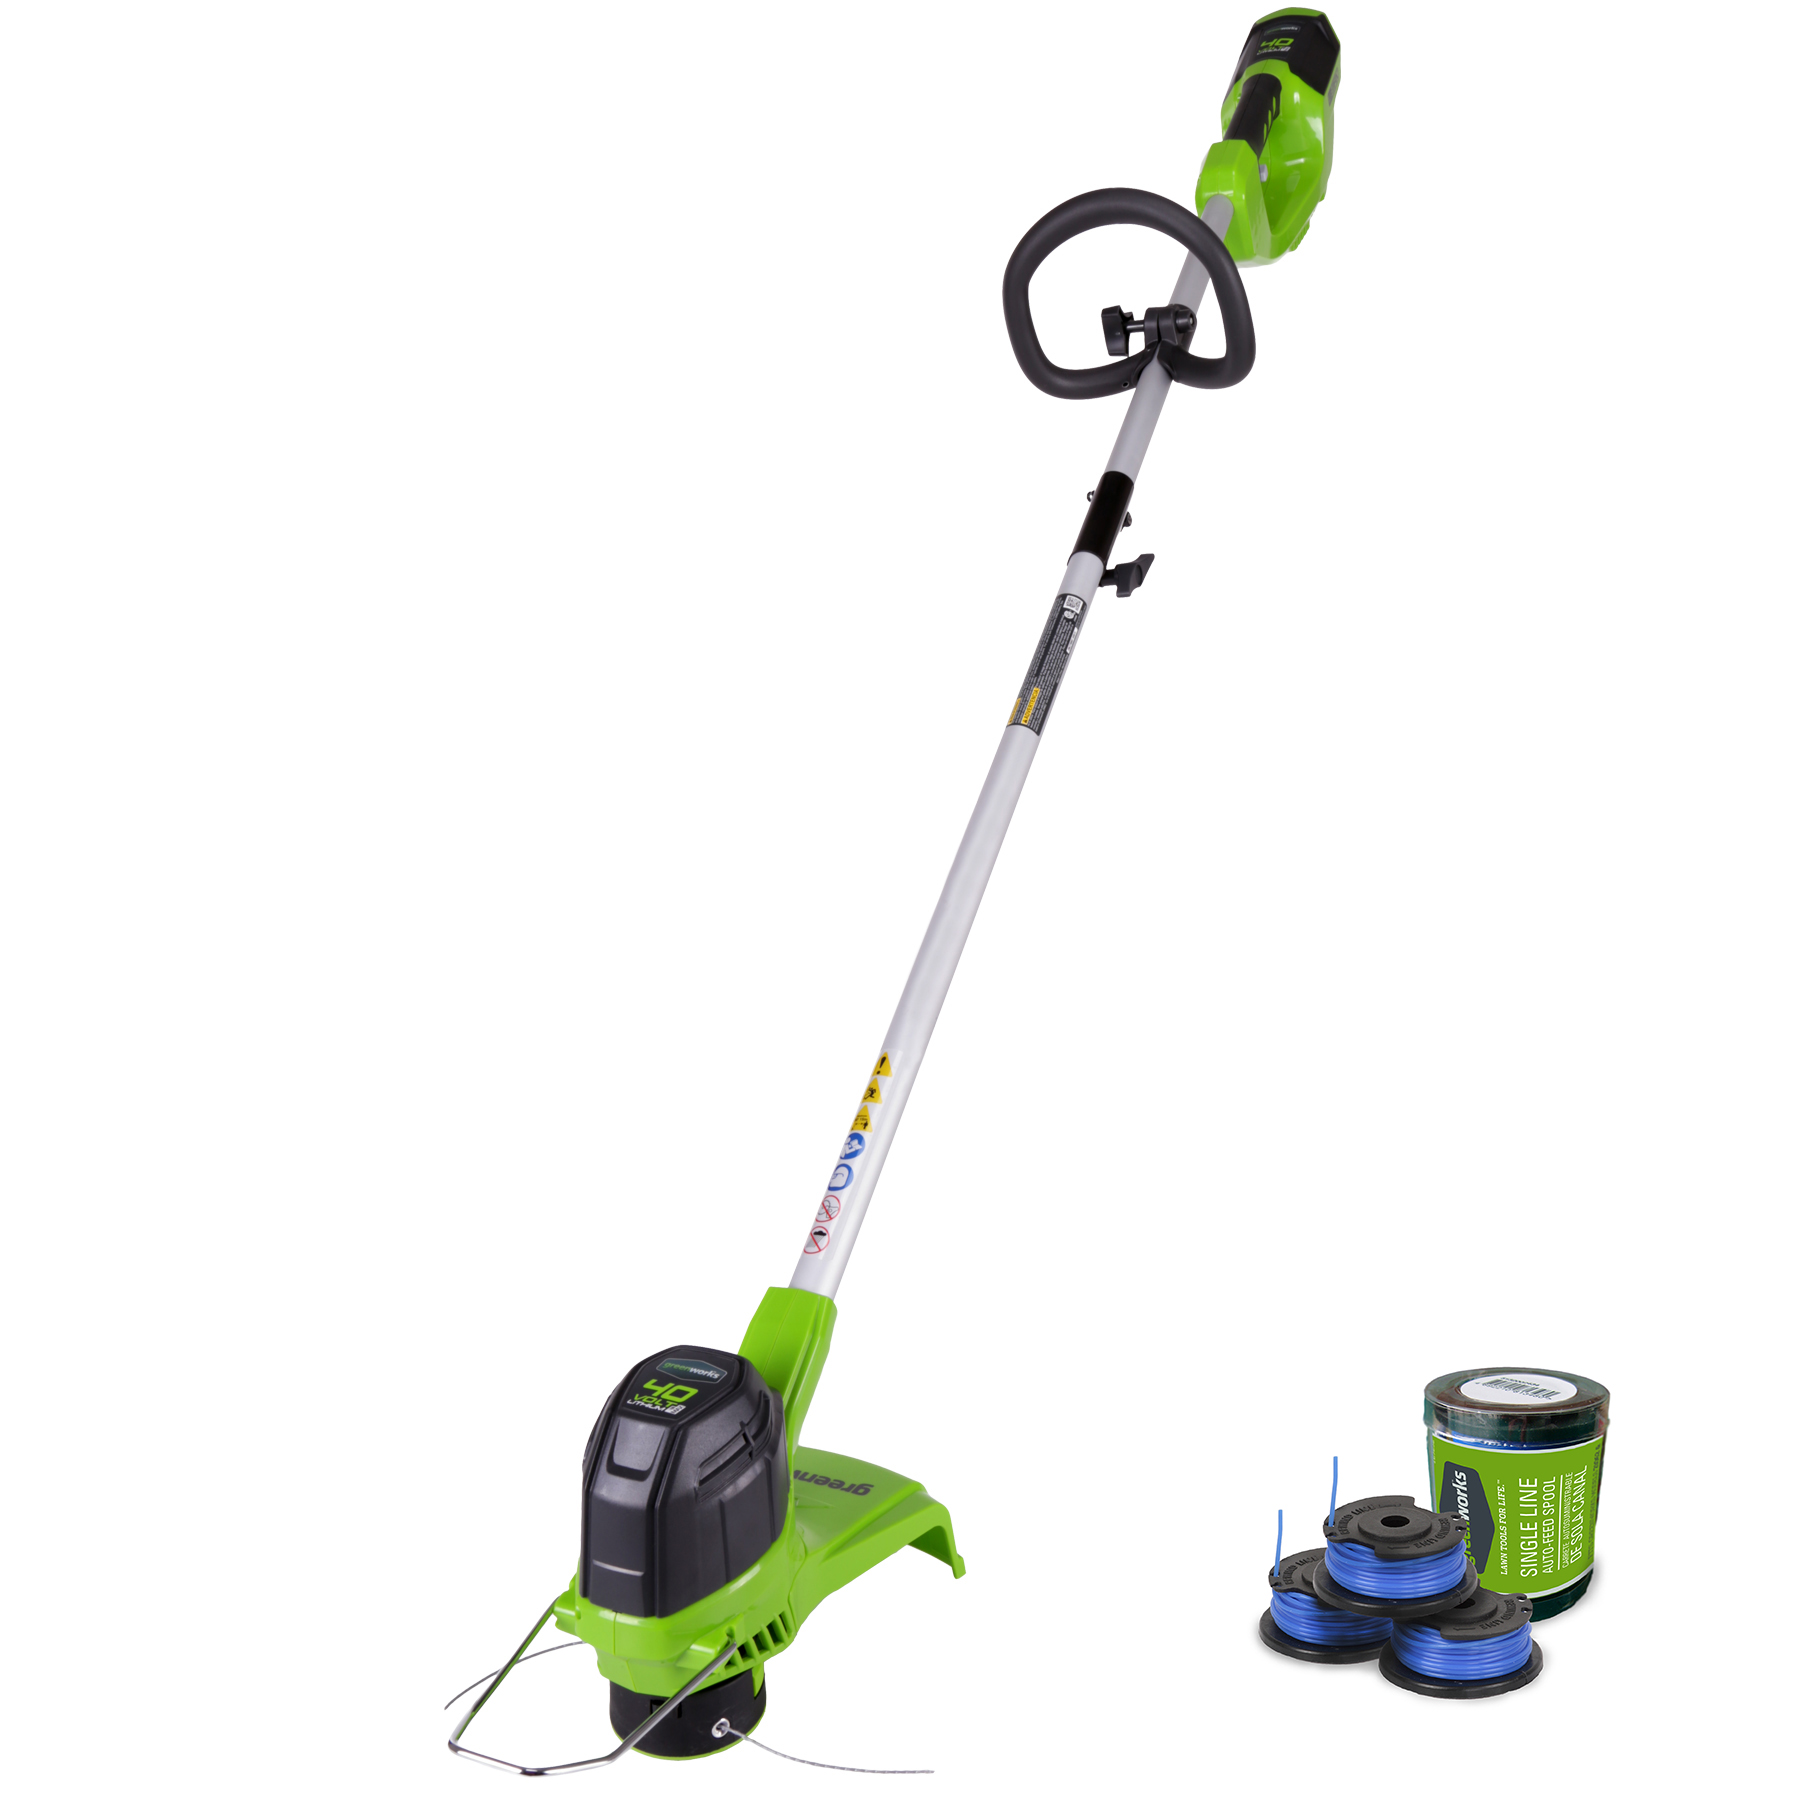 Greenworks 40 V String Trimmer, 2 Ah Battery & Charger Included + Replacement Spool And 3pk Single String Trimmer Line 2111302 by Green Works